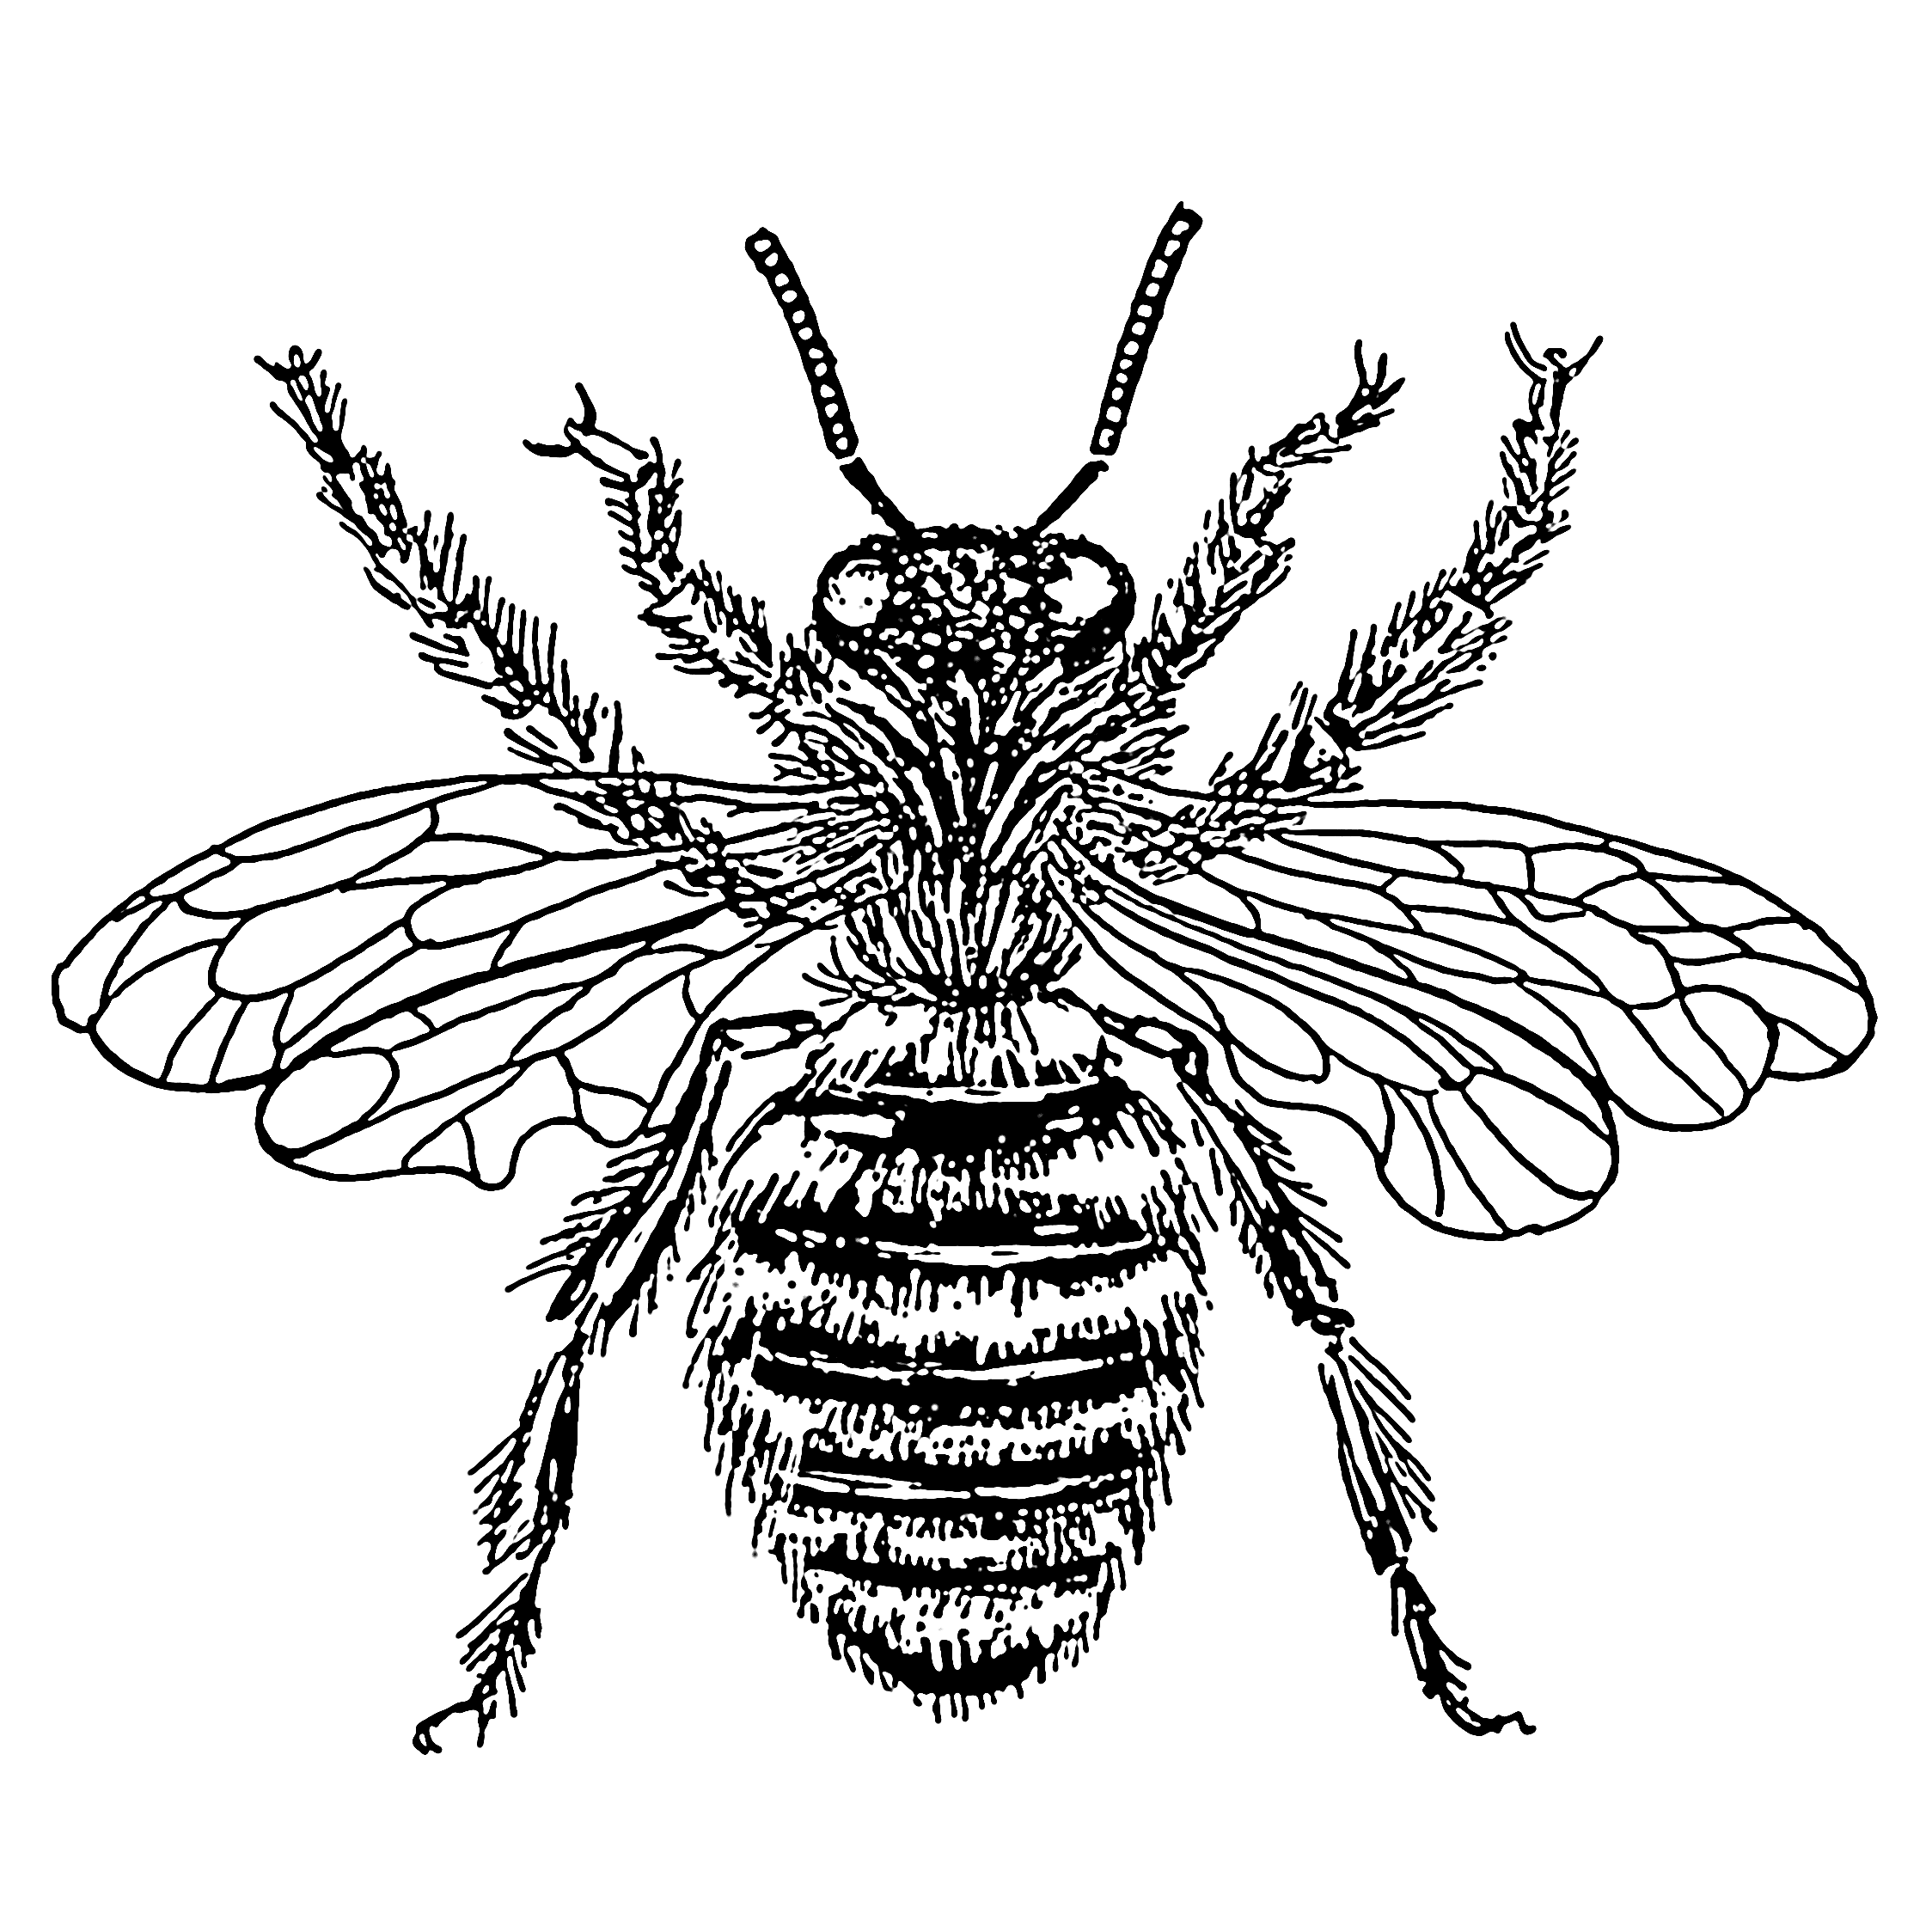 Insect Drawing at GetDrawings.com | Free for personal use Insect ... for Firefly Drawing Scientific  59nar